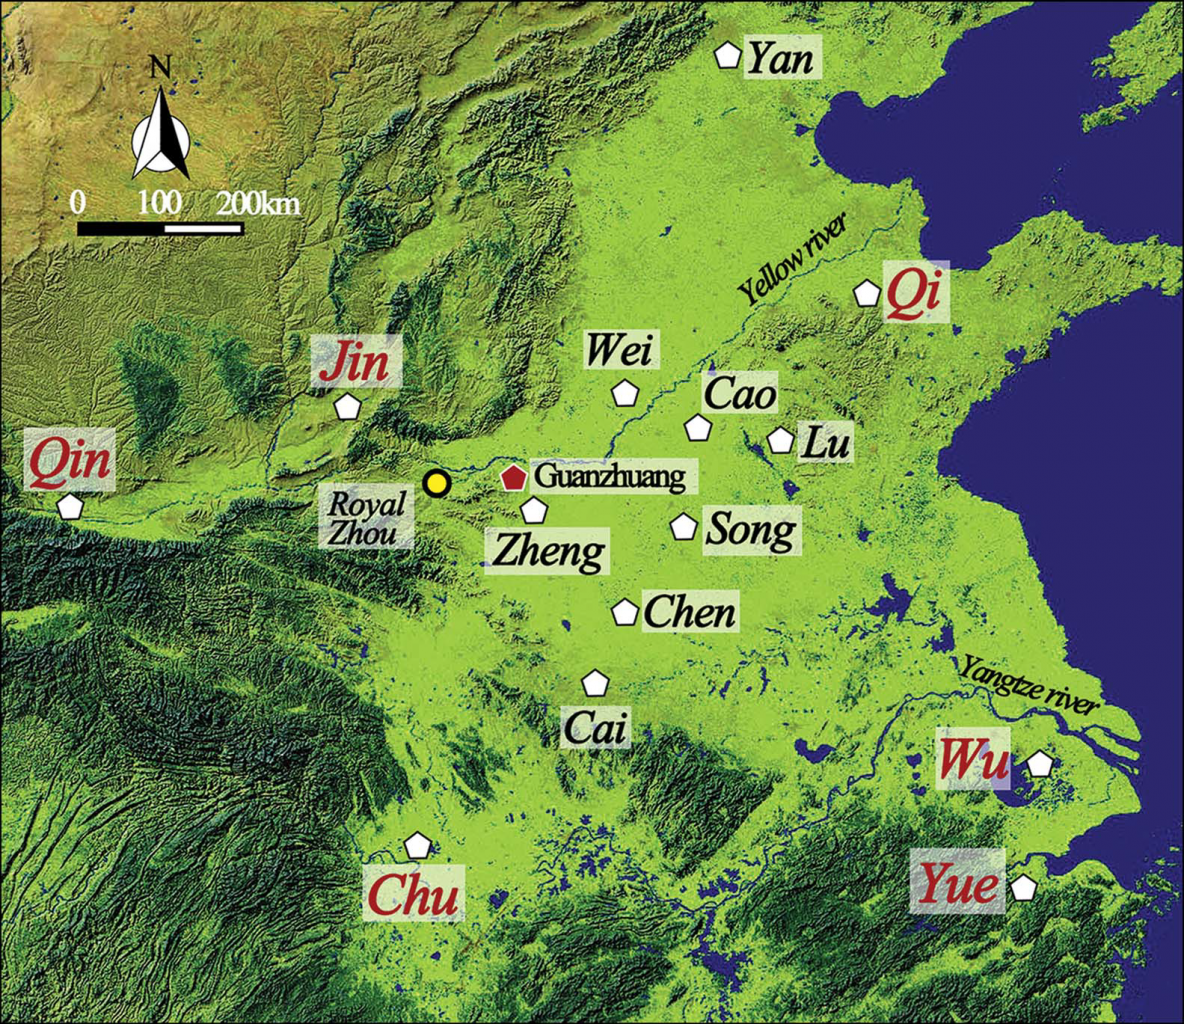 Location of the archaeological site. Credit: Hao Zhao et al. / Antiquity, 2021